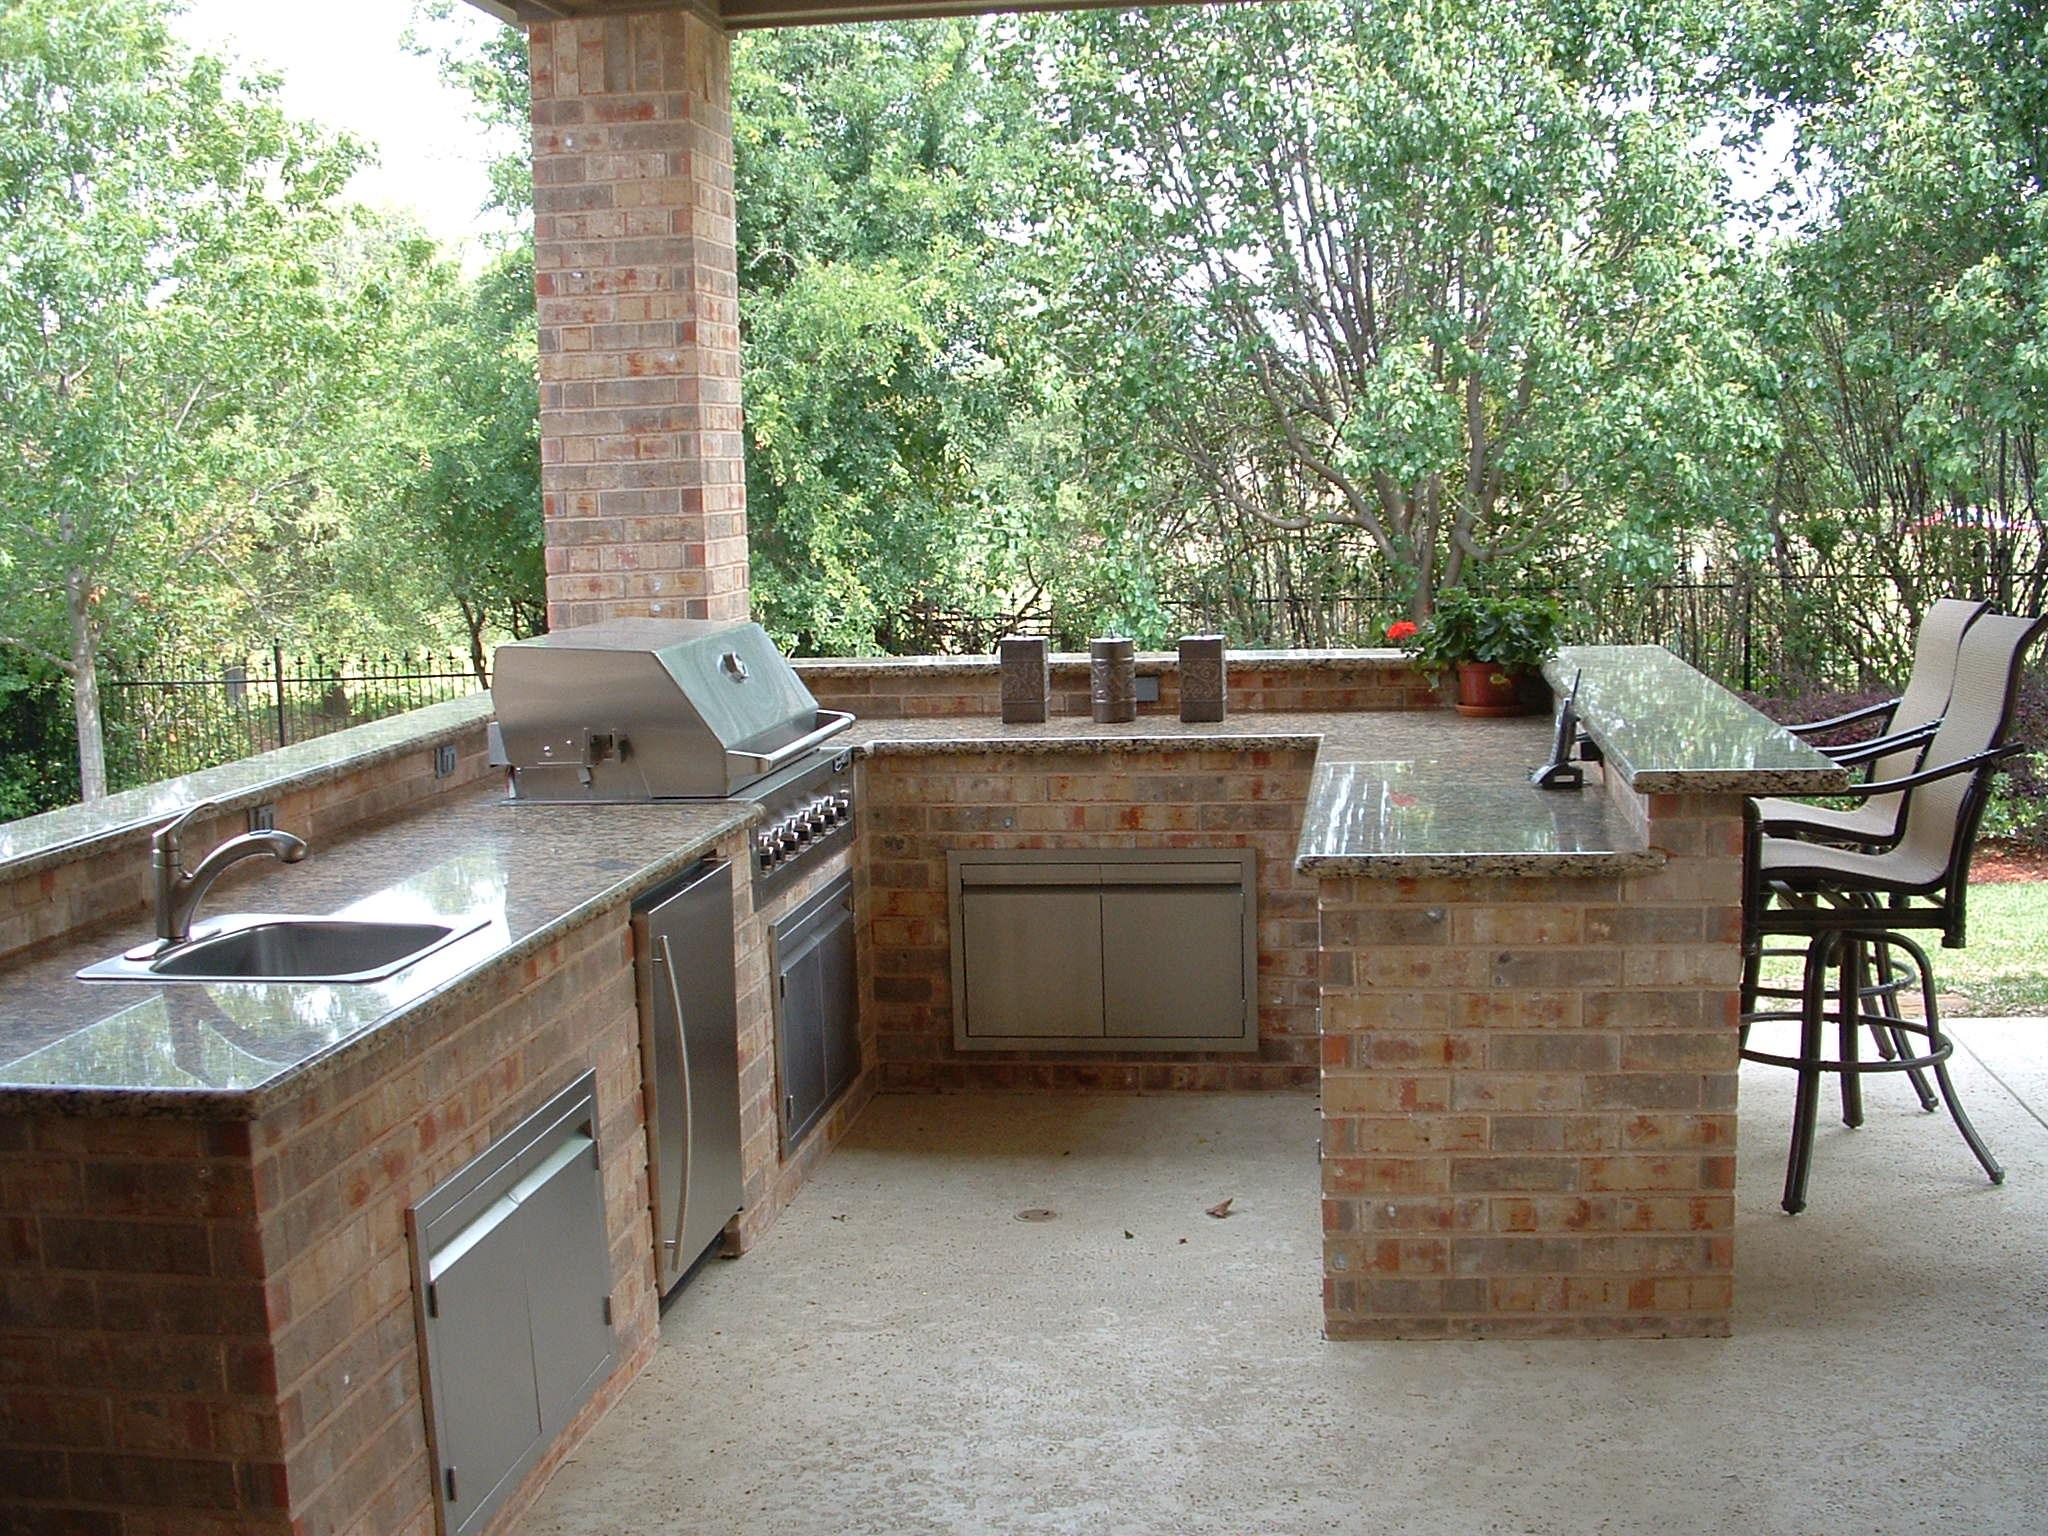 Denver Outdoor Kitchens: Equipment & Installations